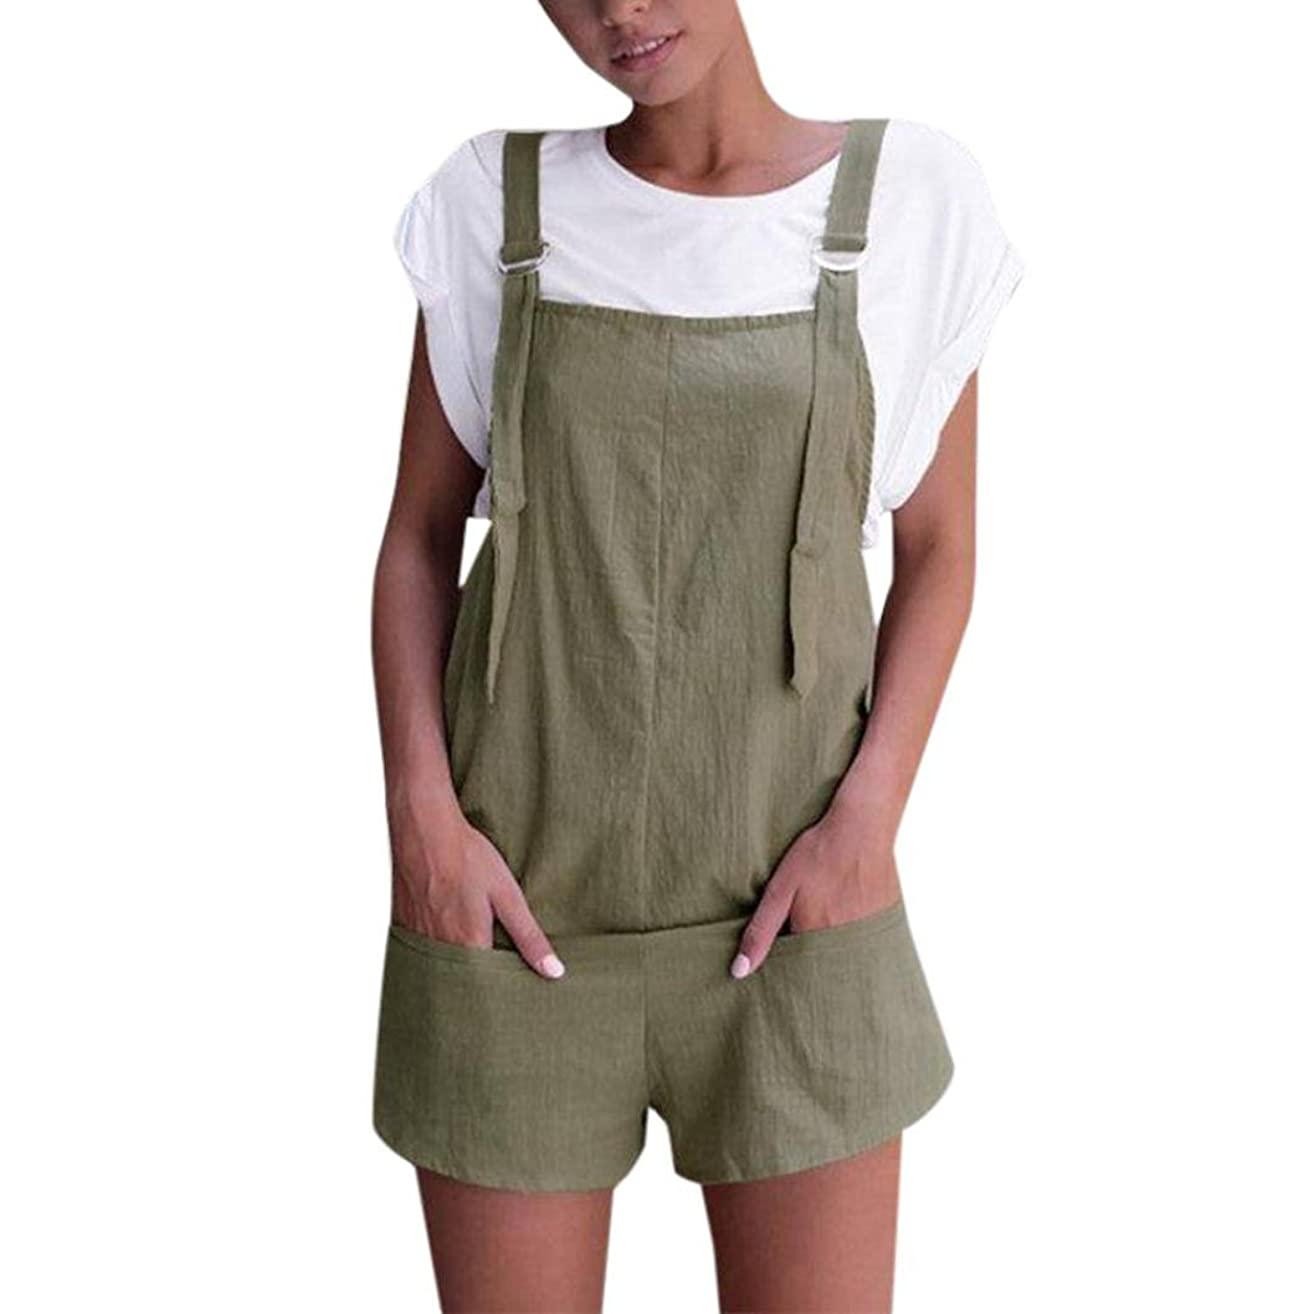 Hot Sale! Women Casual Summer Bib Overalls Romper Overalls Shorts Jumpsuits with Pockets